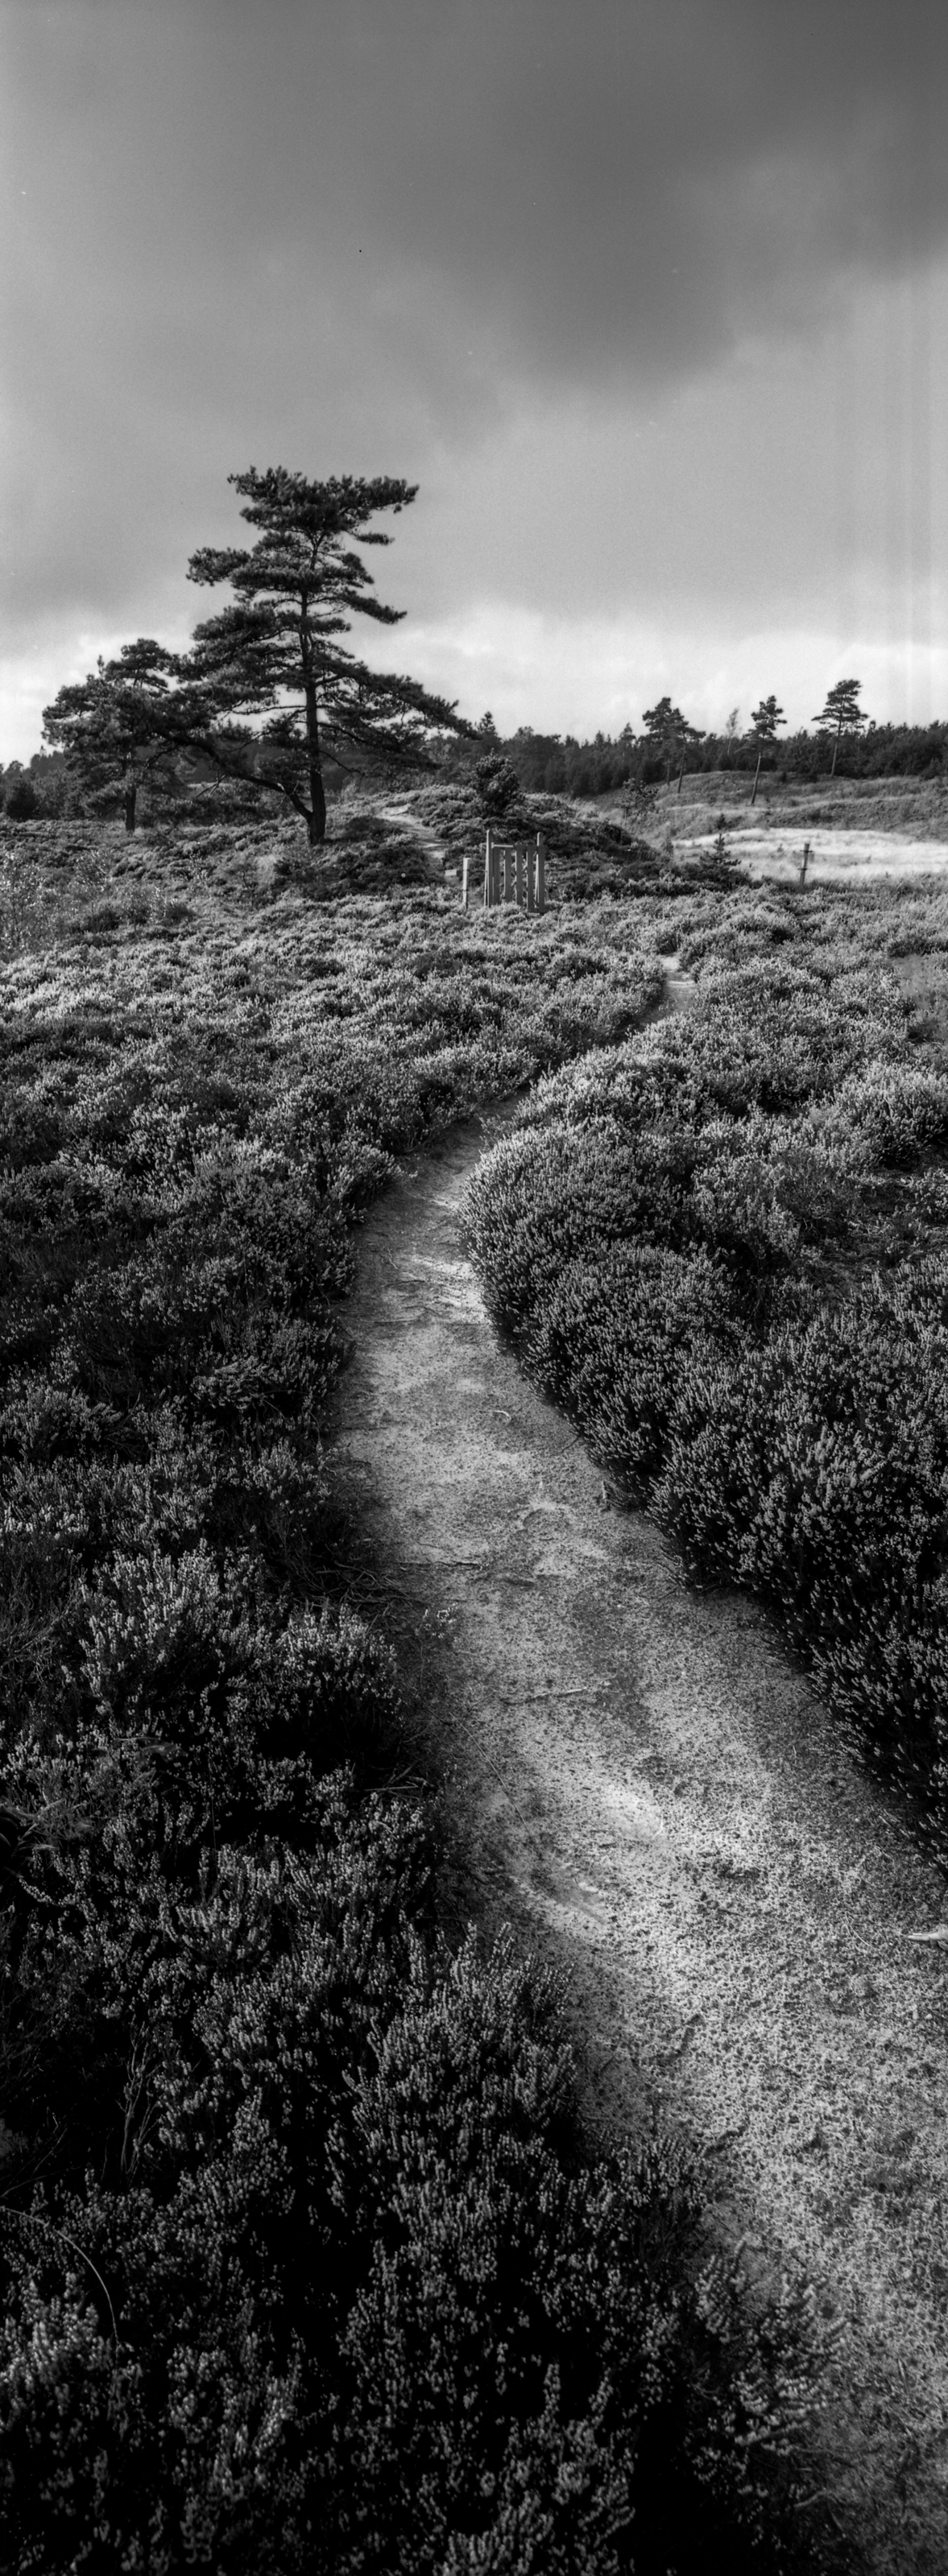 Photo by Martin Tomes   Shot with a Hasselblad Xpan and 30mm f/5.6 lens at 80 ISO  Home processed at Fomadon Excel, stock dilution at at 23°C, for 7 minutes with 30s agitation first minute and 10s every minute after